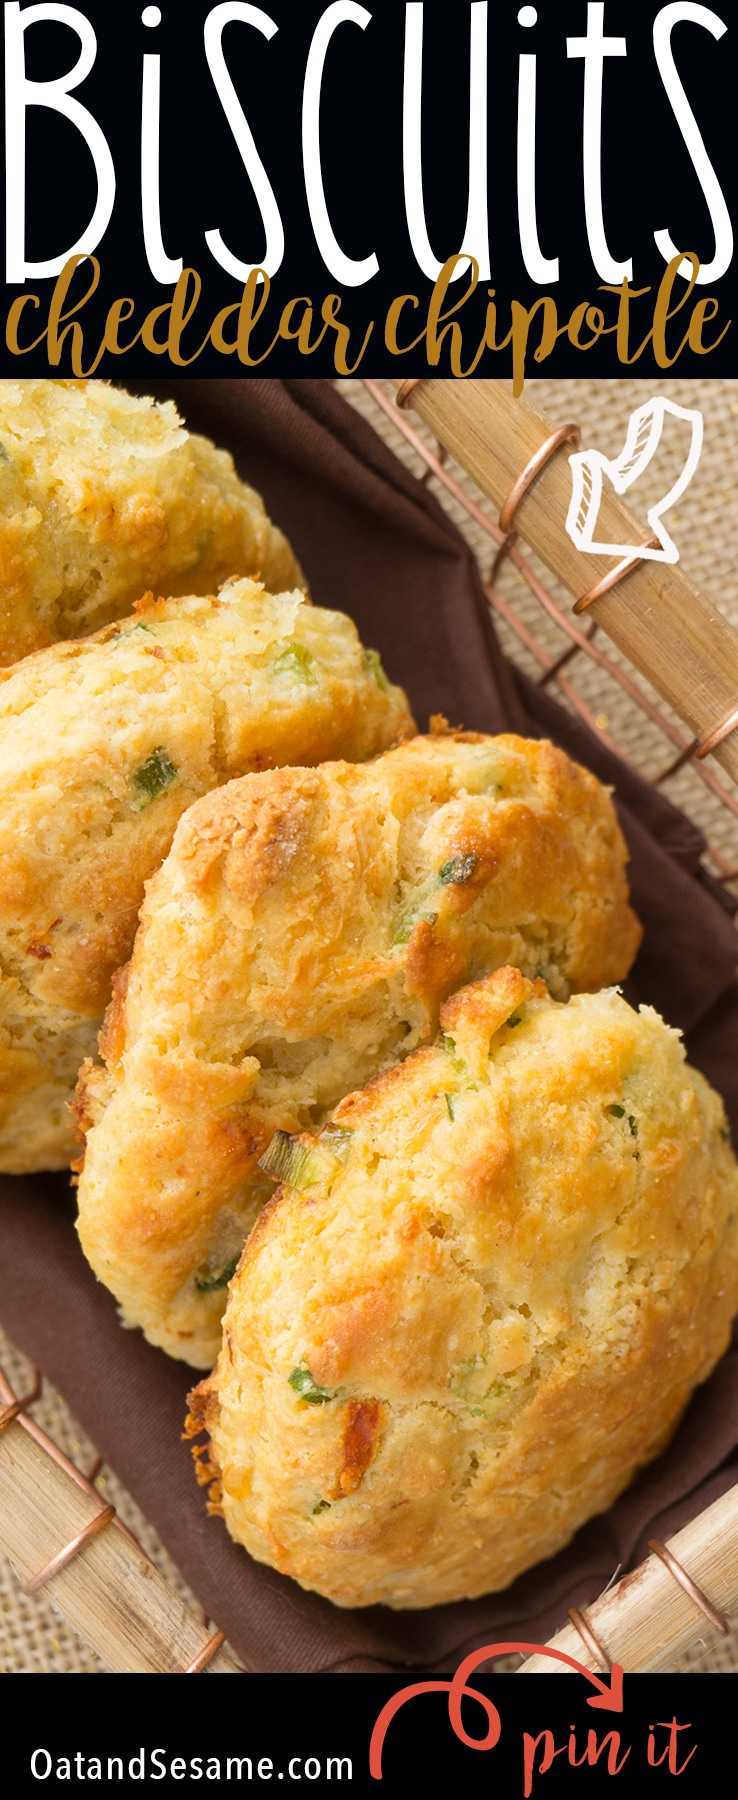 WHITE CHEDDAR CHIPOTLE CORNMEAL BISCUITS. Cheesy Savory Biscuits that are crumbly and tender. So easy and perfect for Breakfast, Lunch and Dinner! | Recipe at OatandSesame.com